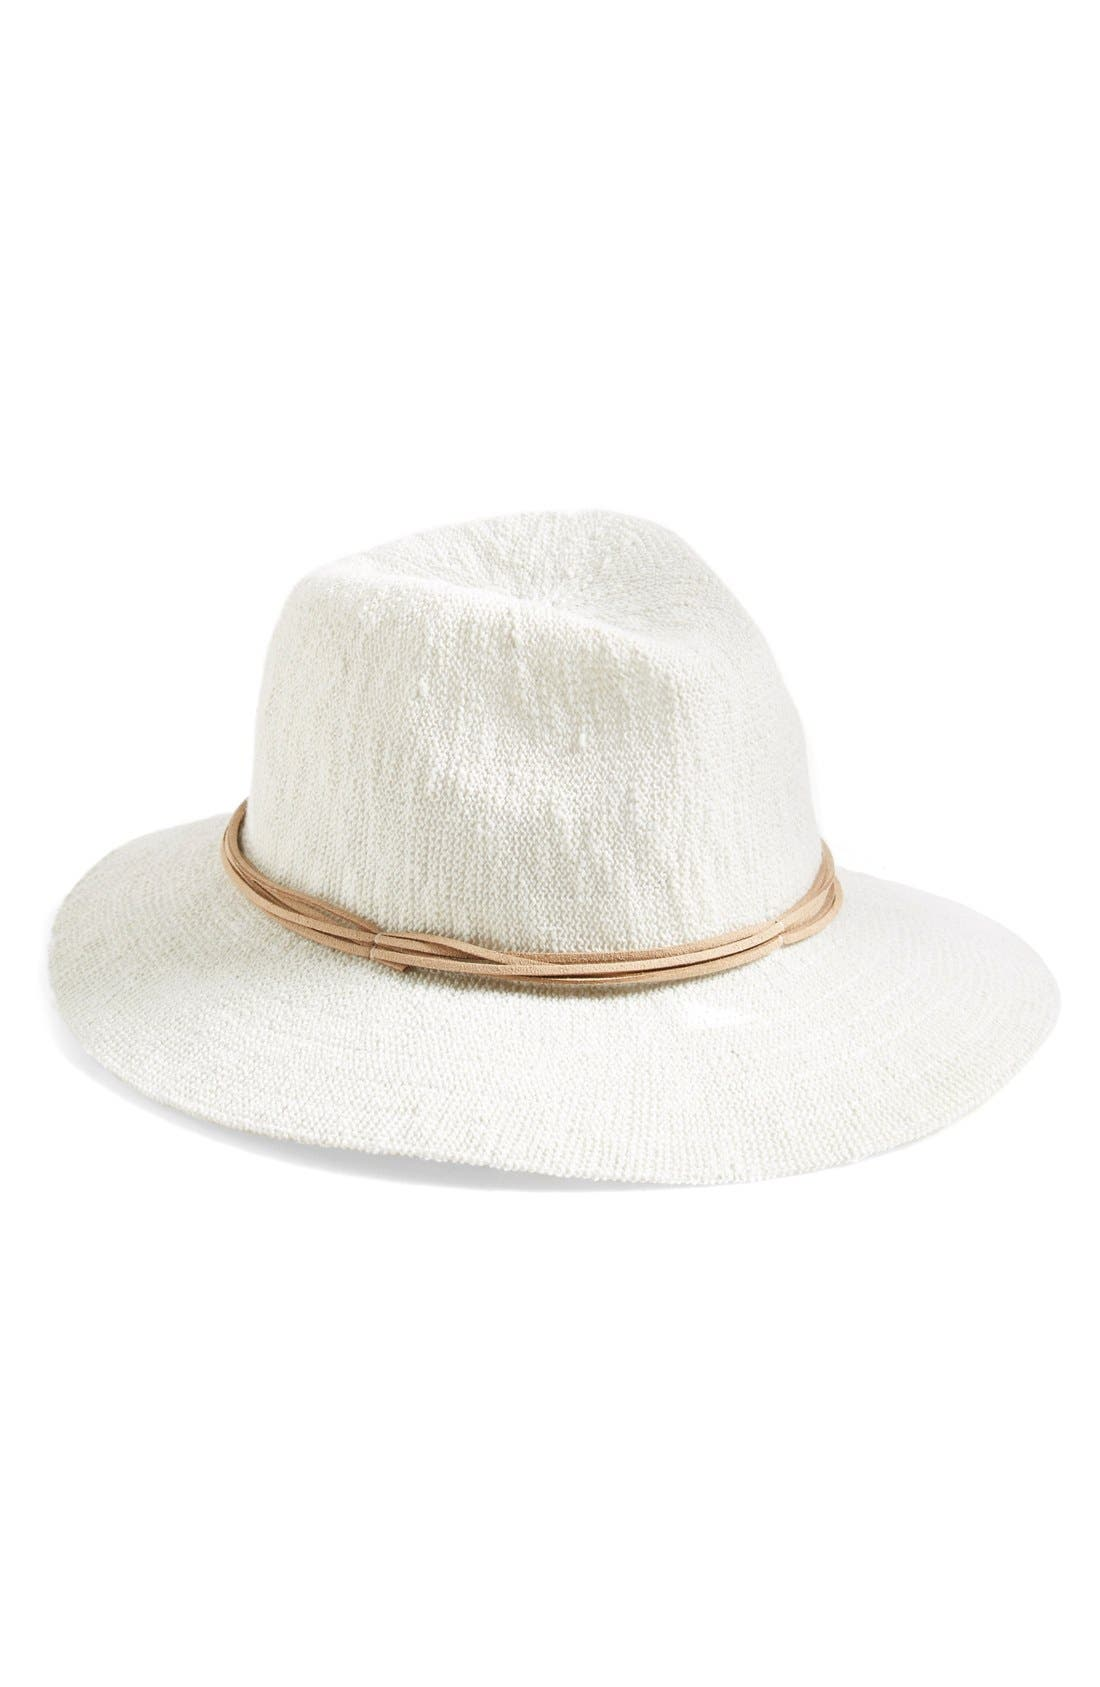 Treasure & Bond Slub Knit Panama Hat